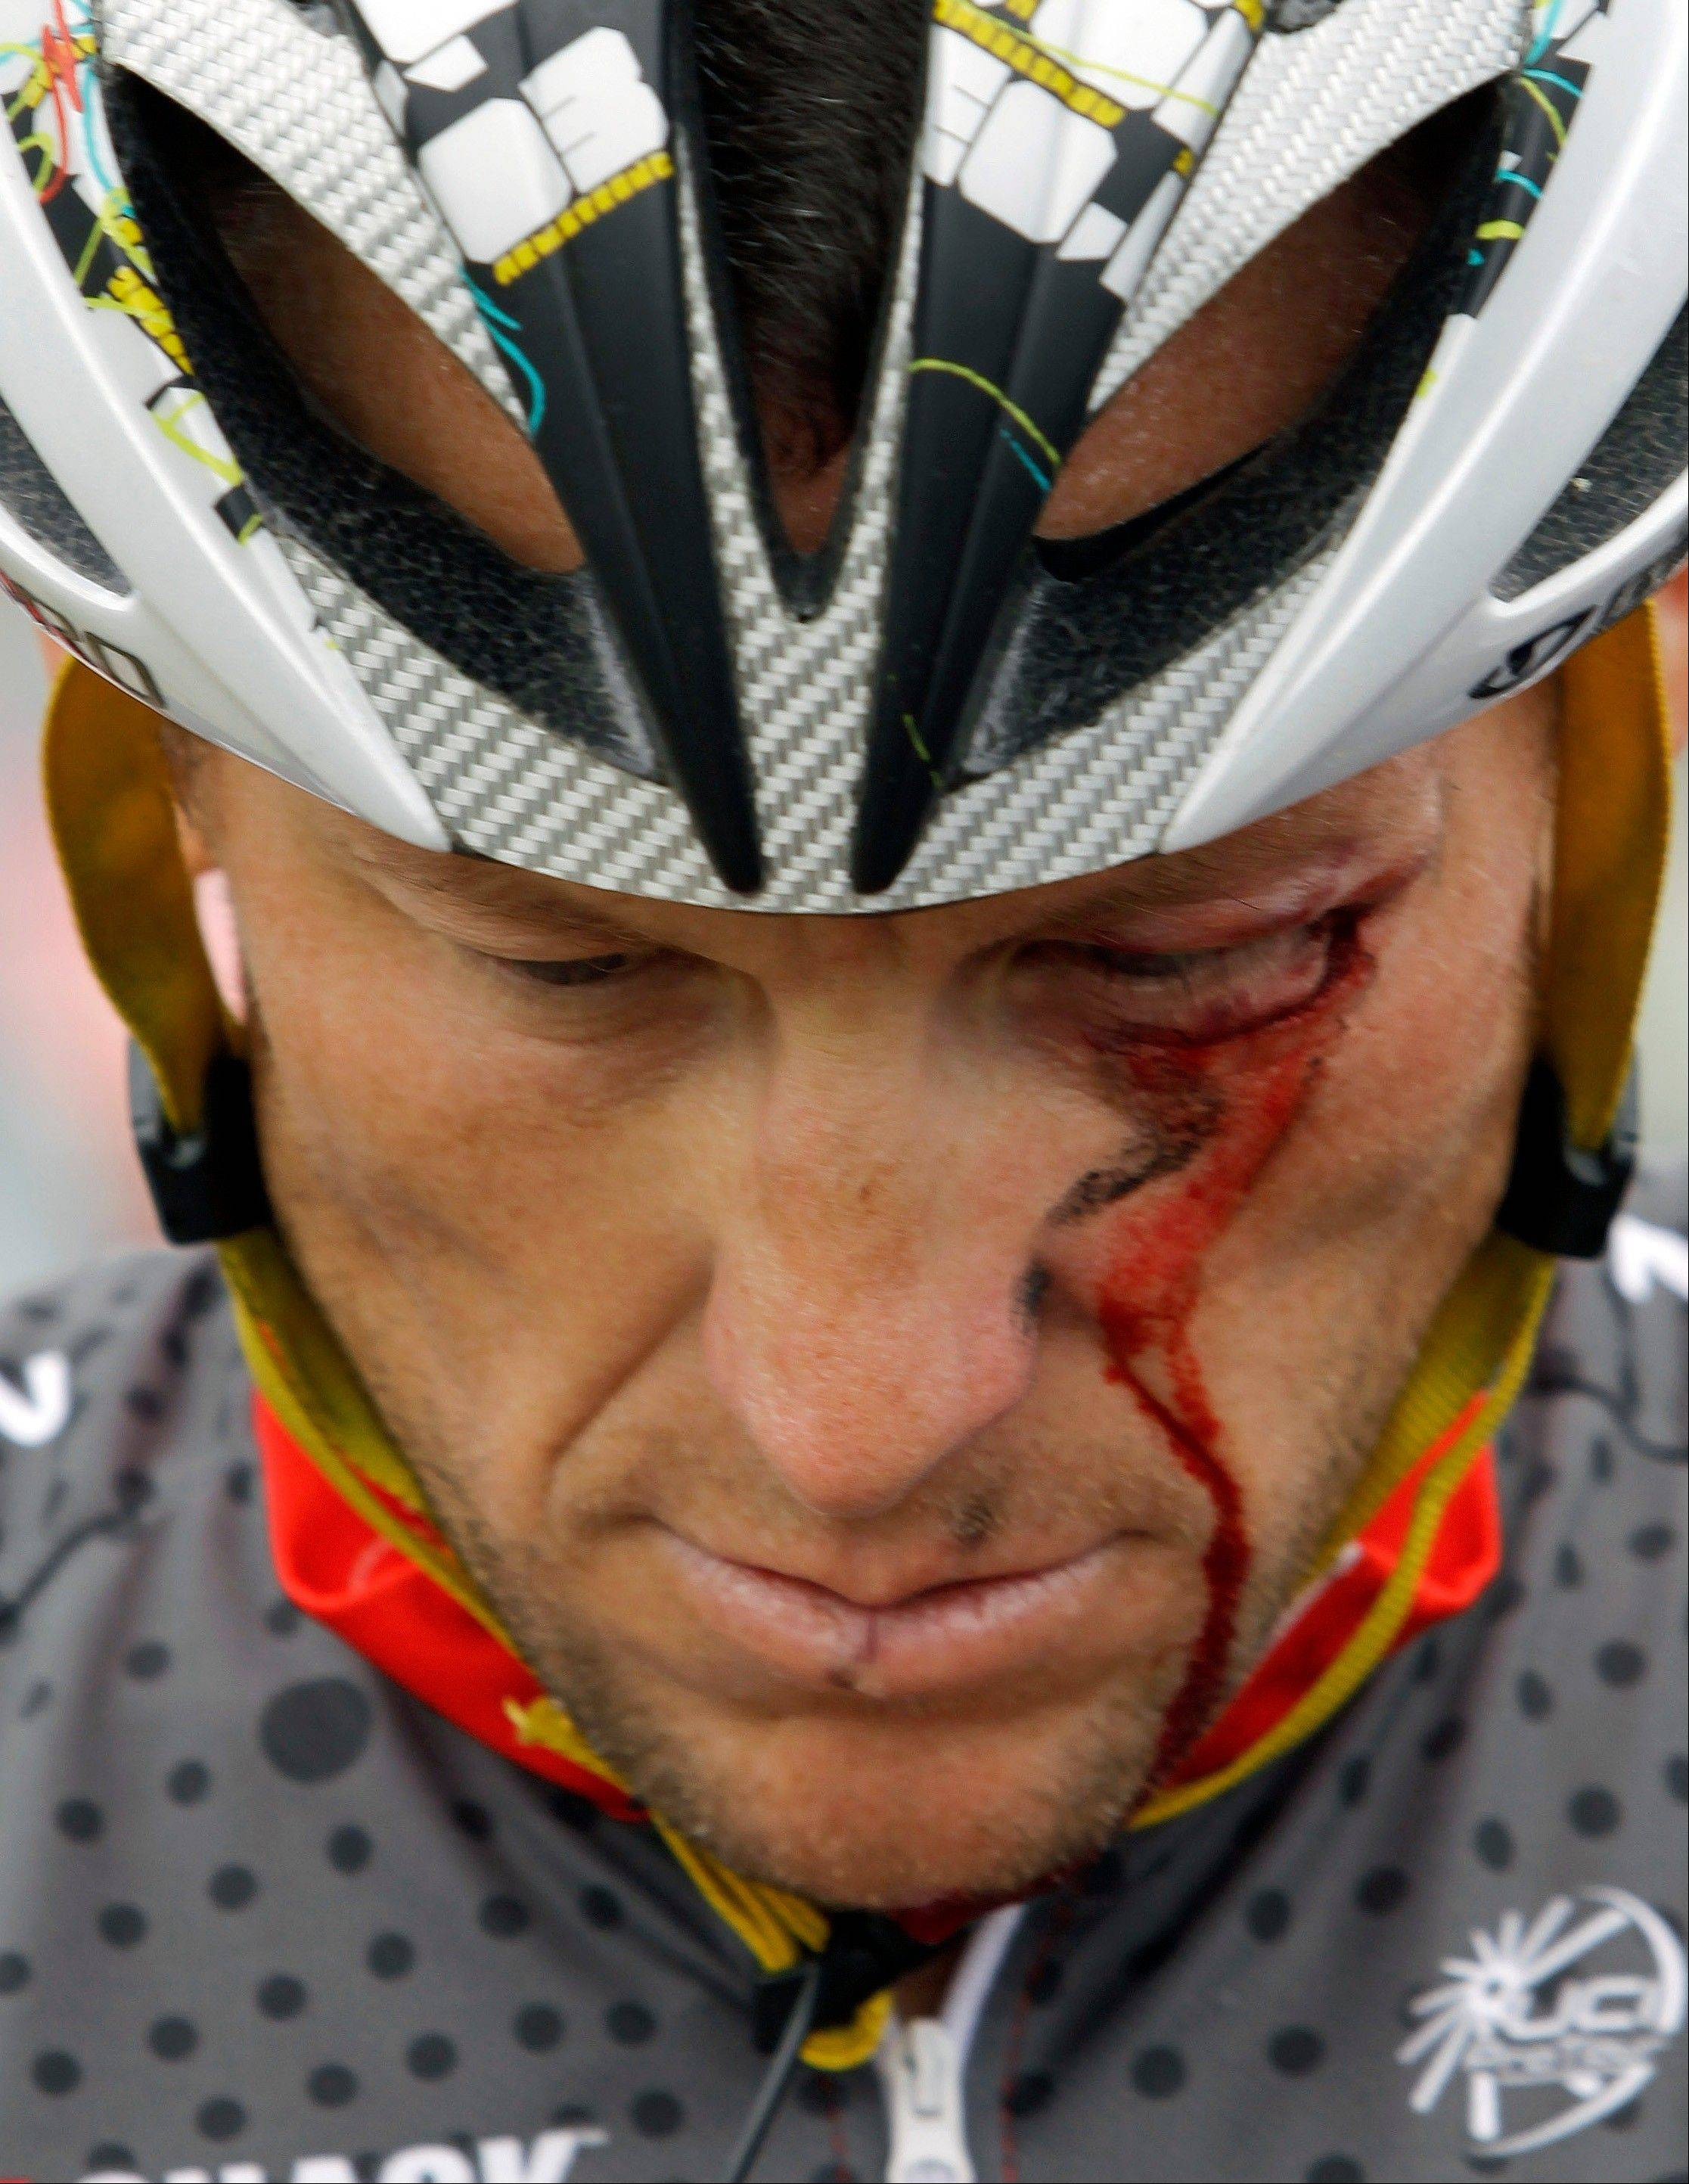 Associated Press The dirty past of the Tour de France came back on Friday, June 28, 2013, to haunt the 100th edition of cycling�s showcase race, with Lance Armstrong telling a newspaper he couldn�t have won without doping.